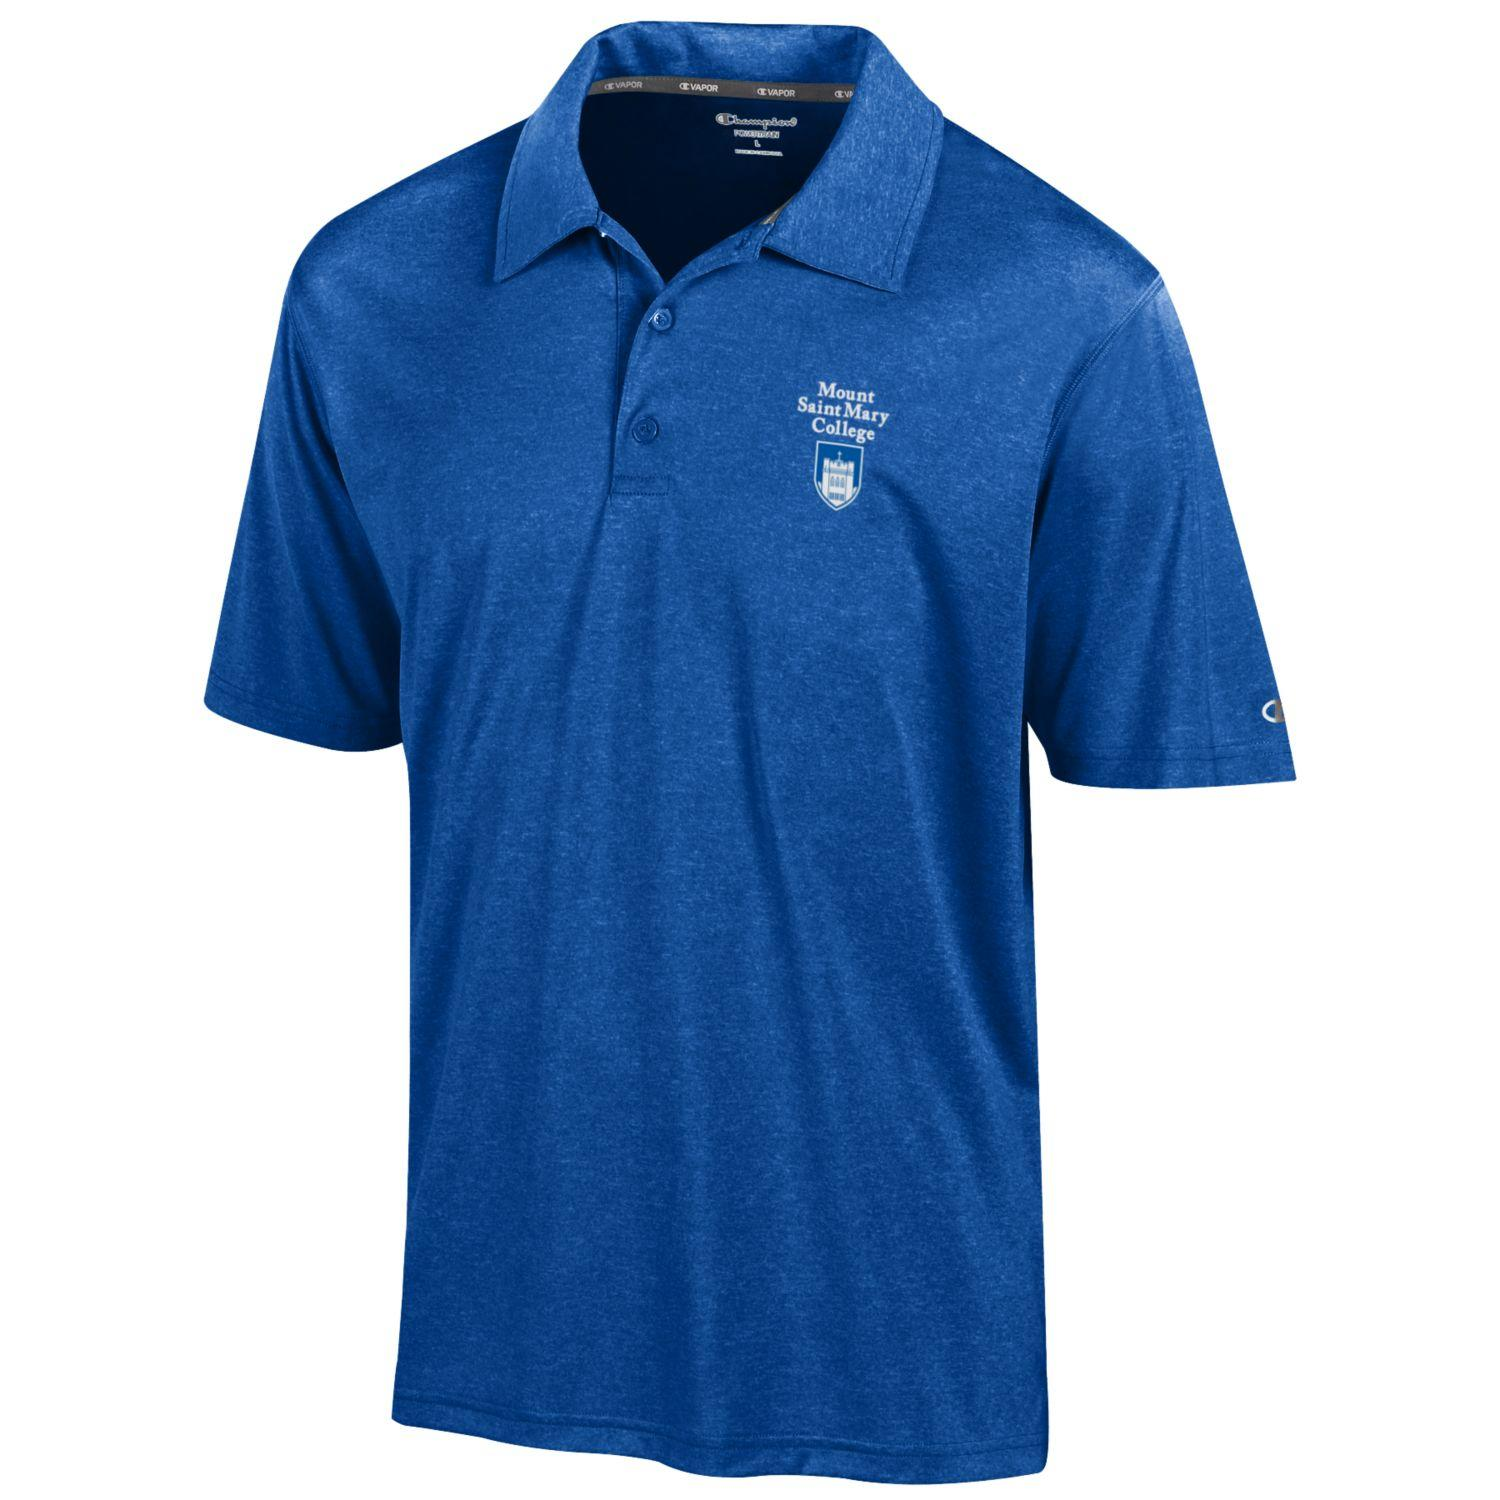 Champion Polo Royal Blue